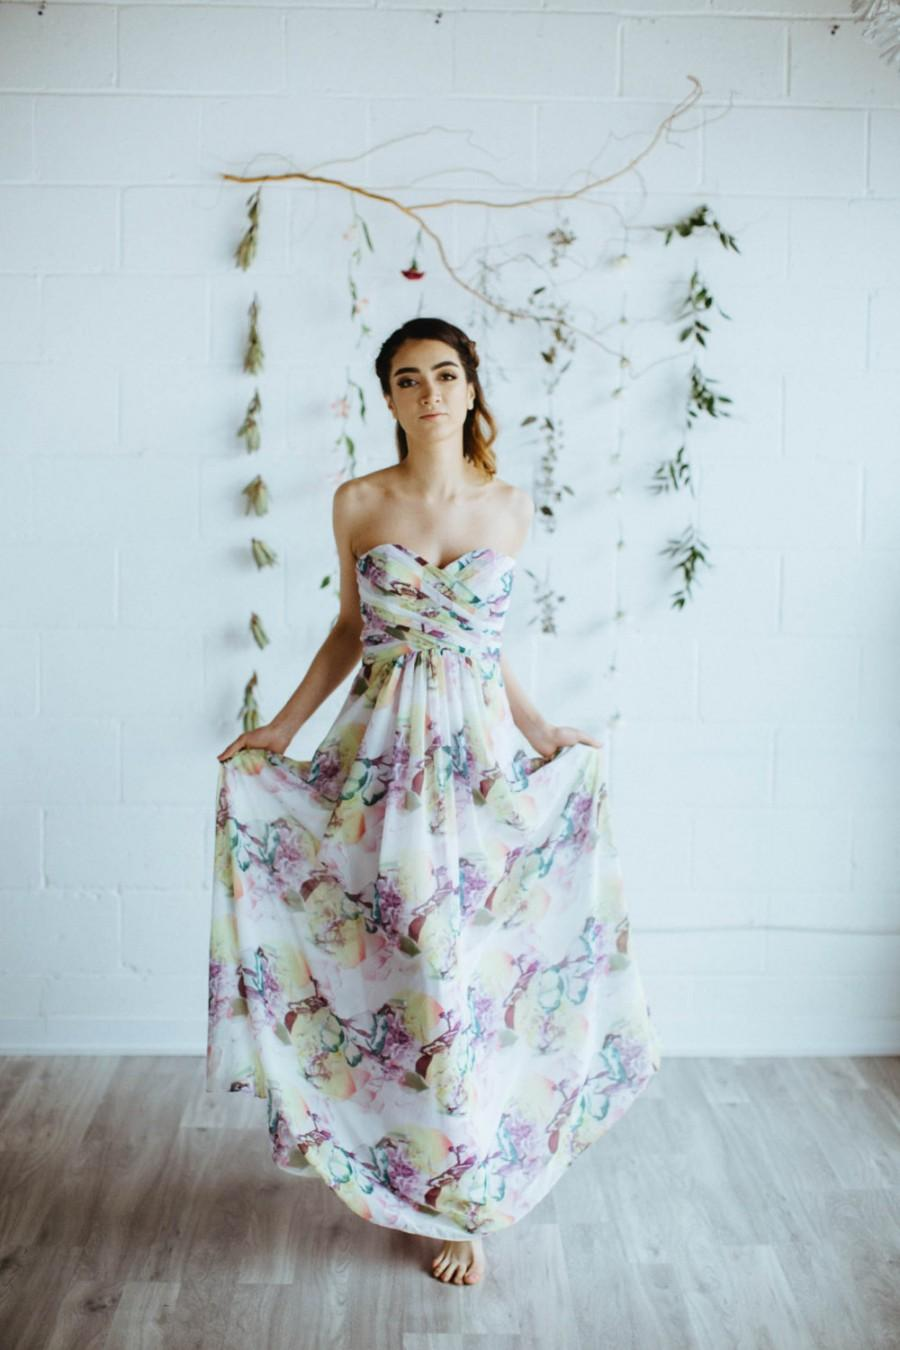 Floral print bridesmaid dress arie strapless sweetheart gown floral print bridesmaid dress arie strapless sweetheart gown with bodice pleating removable straps summer wedding dress ombrellifo Images